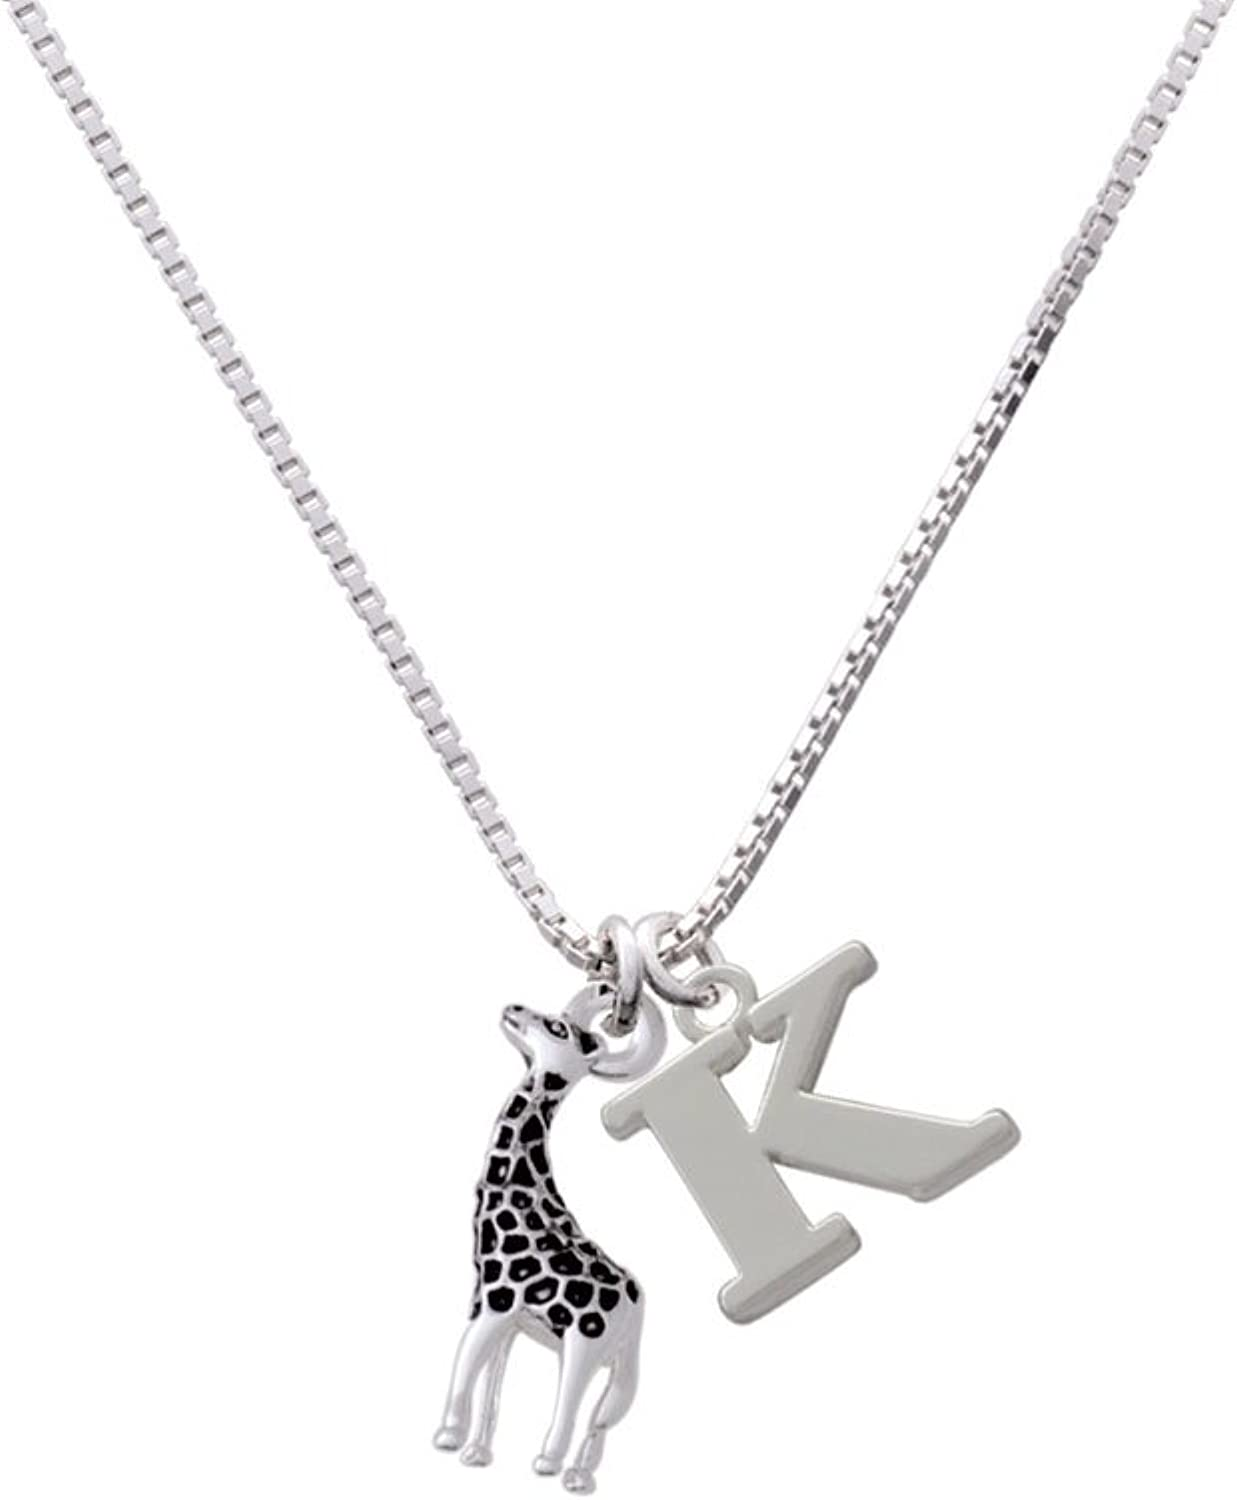 Capital Initial Necklace Delight Jewelry Antiqued Giraffe